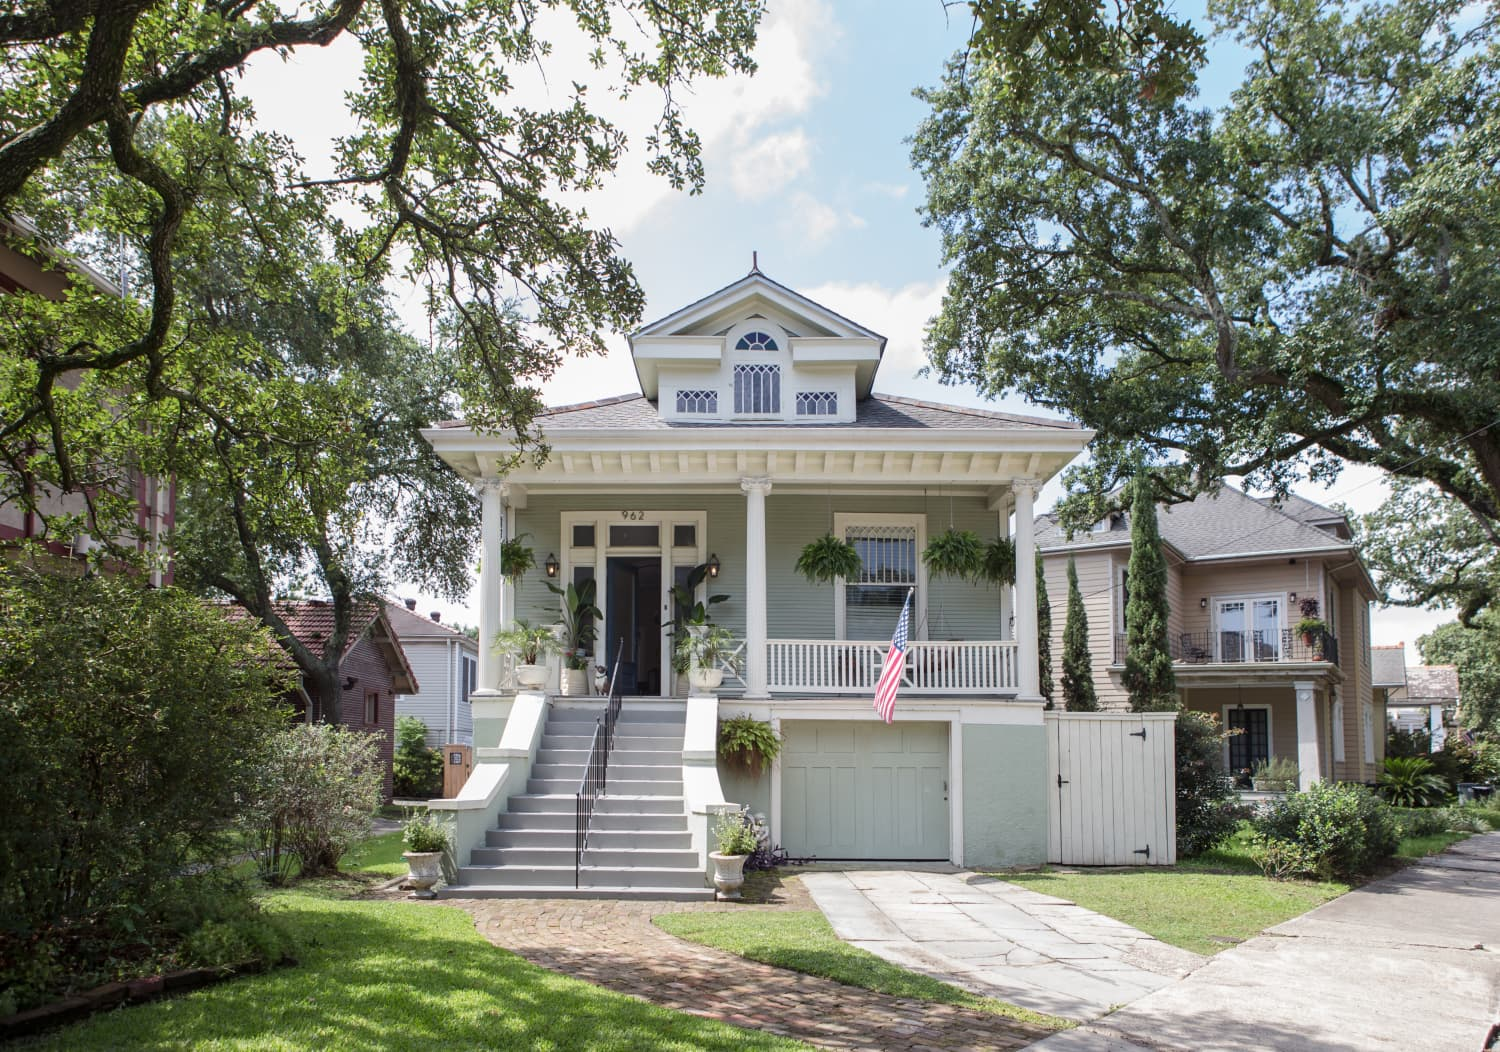 8 Things About Old Homes Real Estate Agents Say We Take for Granted